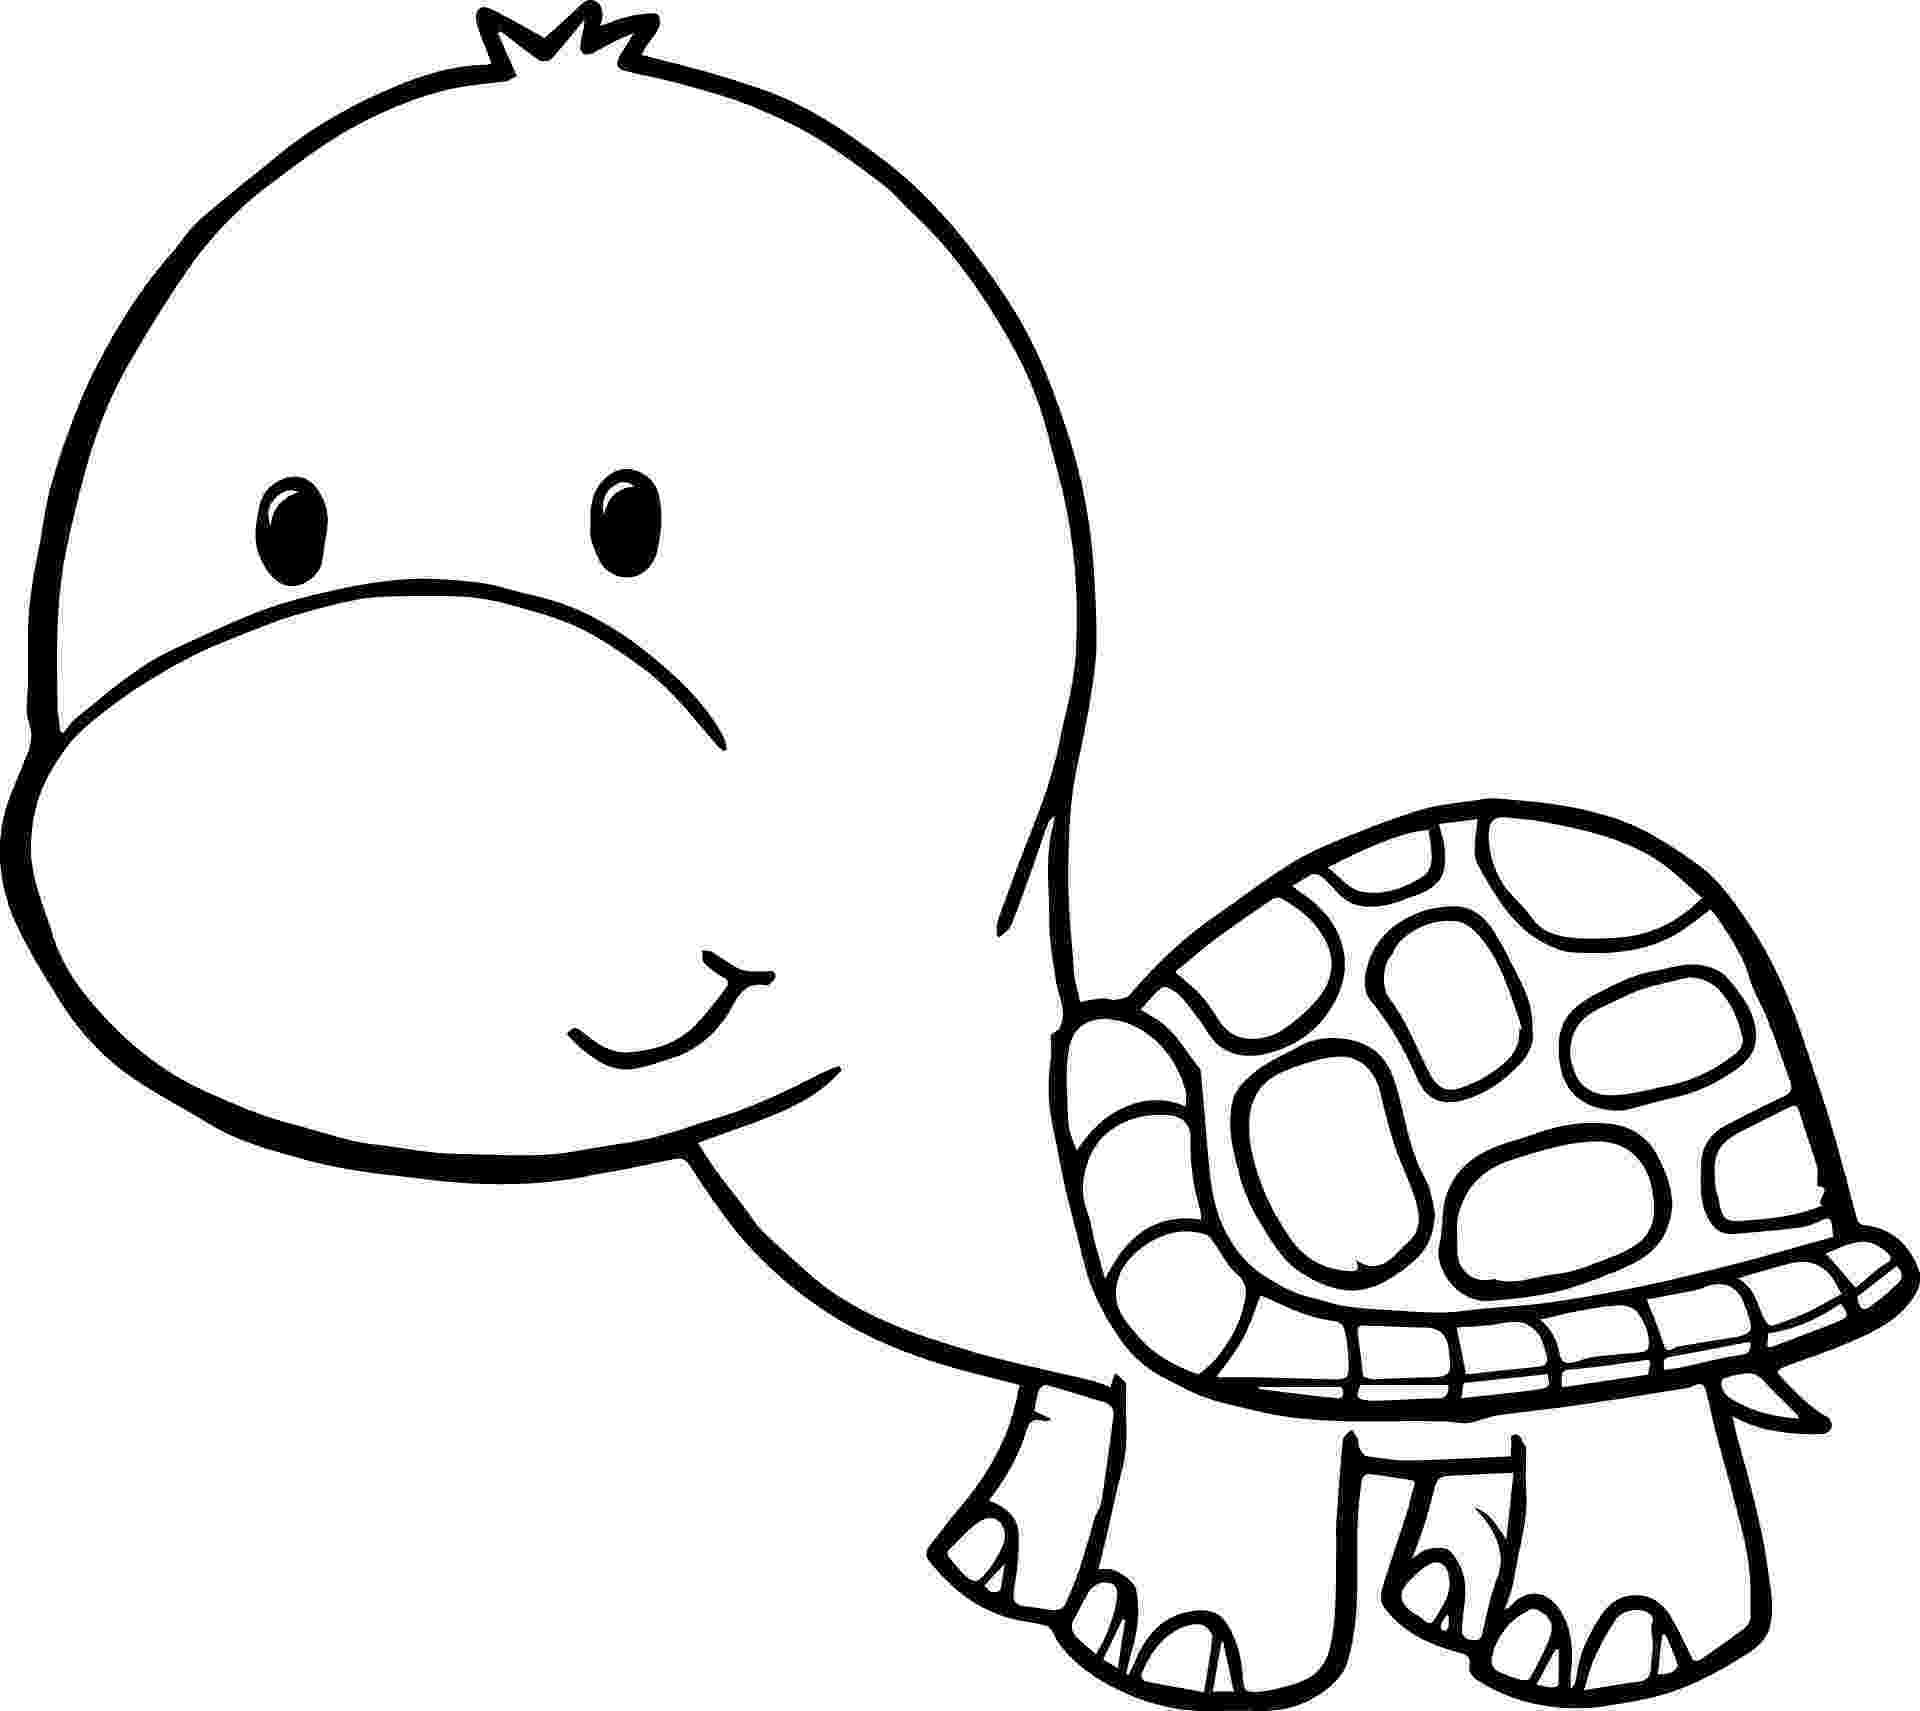 coloring page of turtle cute cartoon turtle wallpapers top free cute cartoon of page turtle coloring